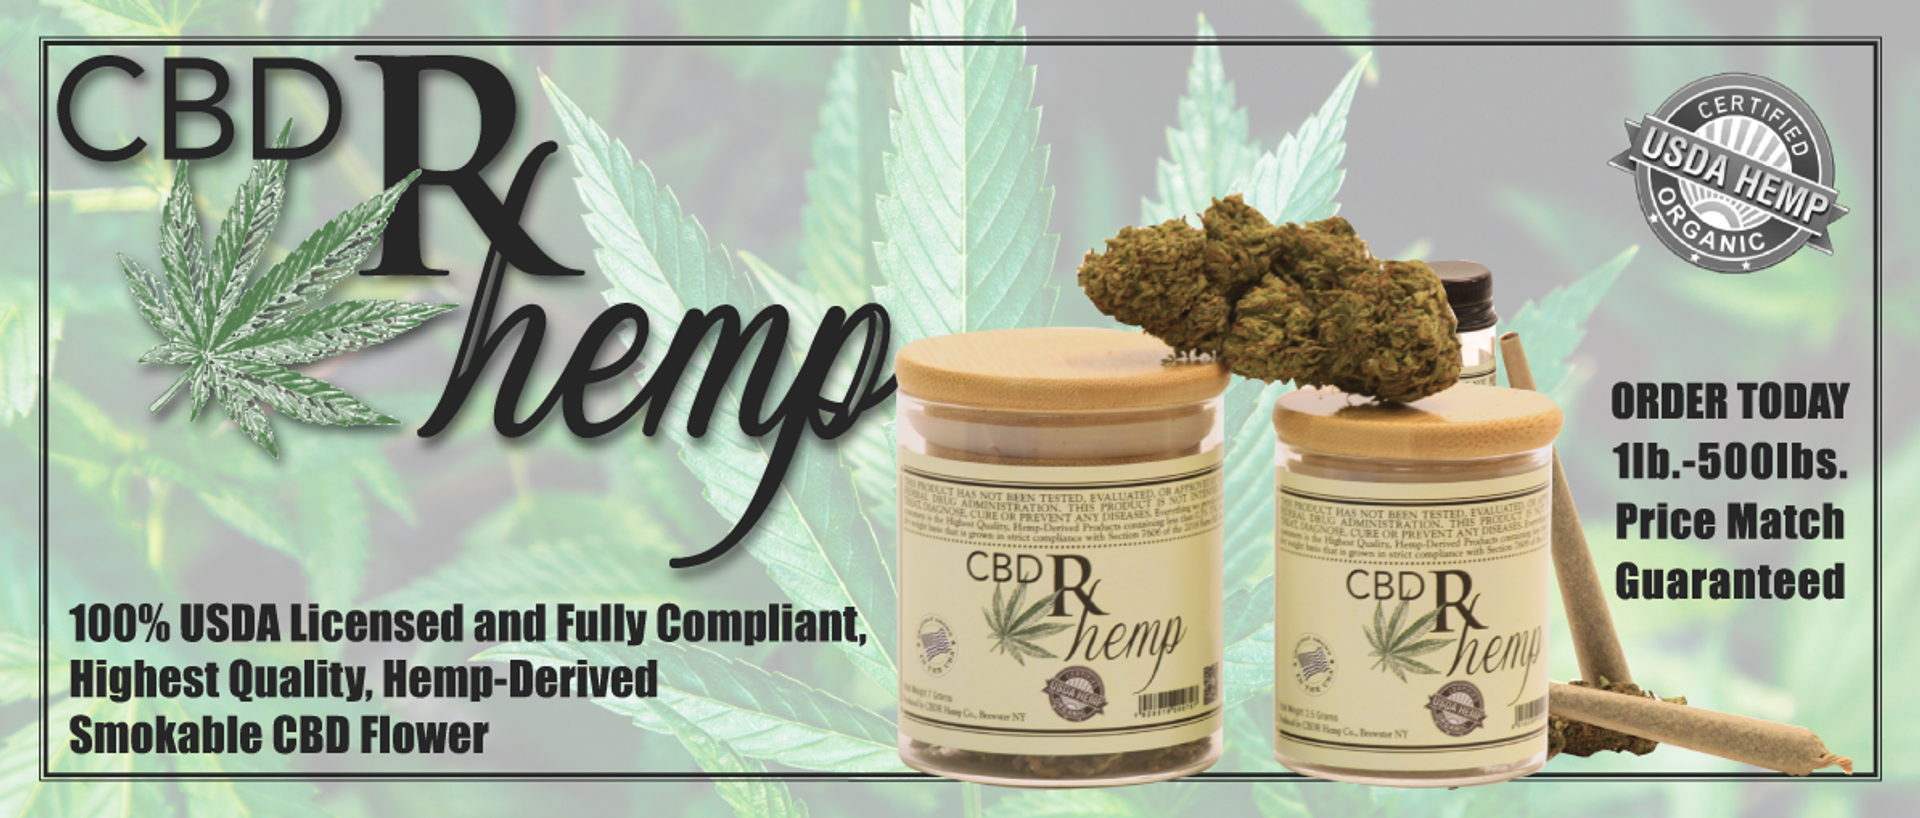 As HEMP professionals our passion and goal is to create a world-class Brand of smokeable HEMP products. This is precisely what we created with The CBDR Hemp Co. Brand of Products.  Real Hemp, Hand Made to Perfection and with more than 30 plus high quality